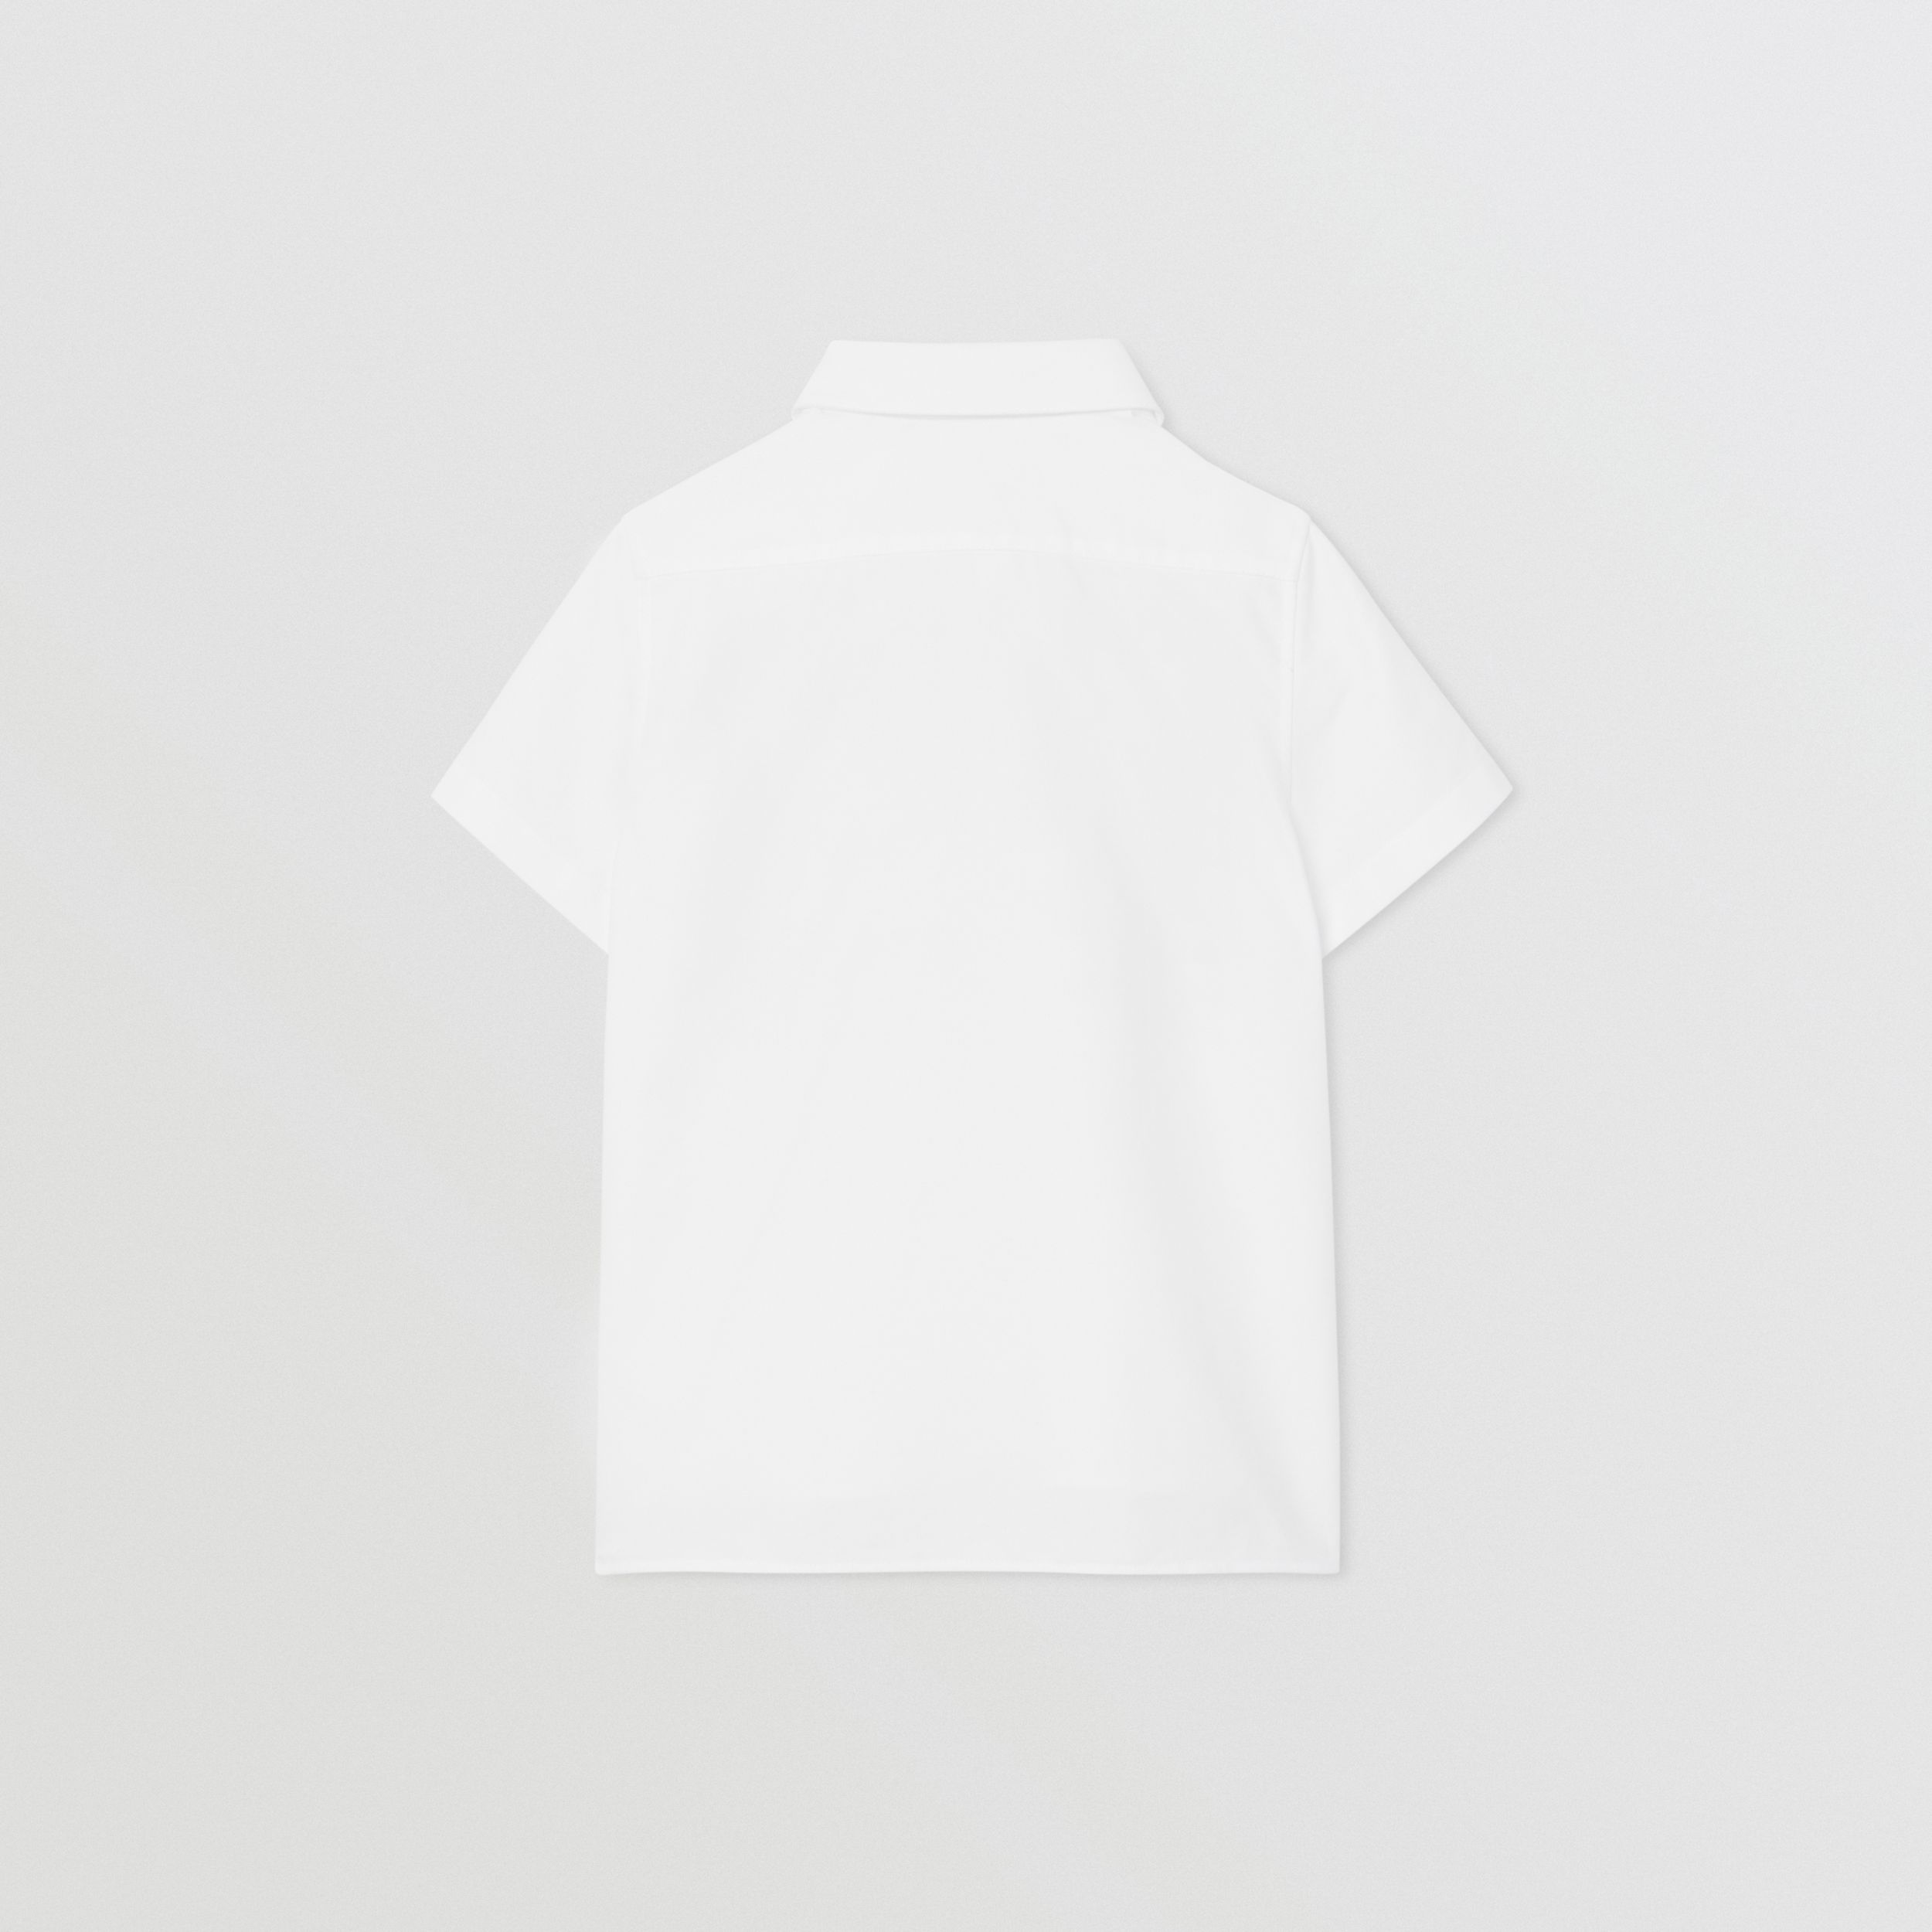 Short-sleeve Logo Print Cotton Oxford Shirt in White | Burberry - 4